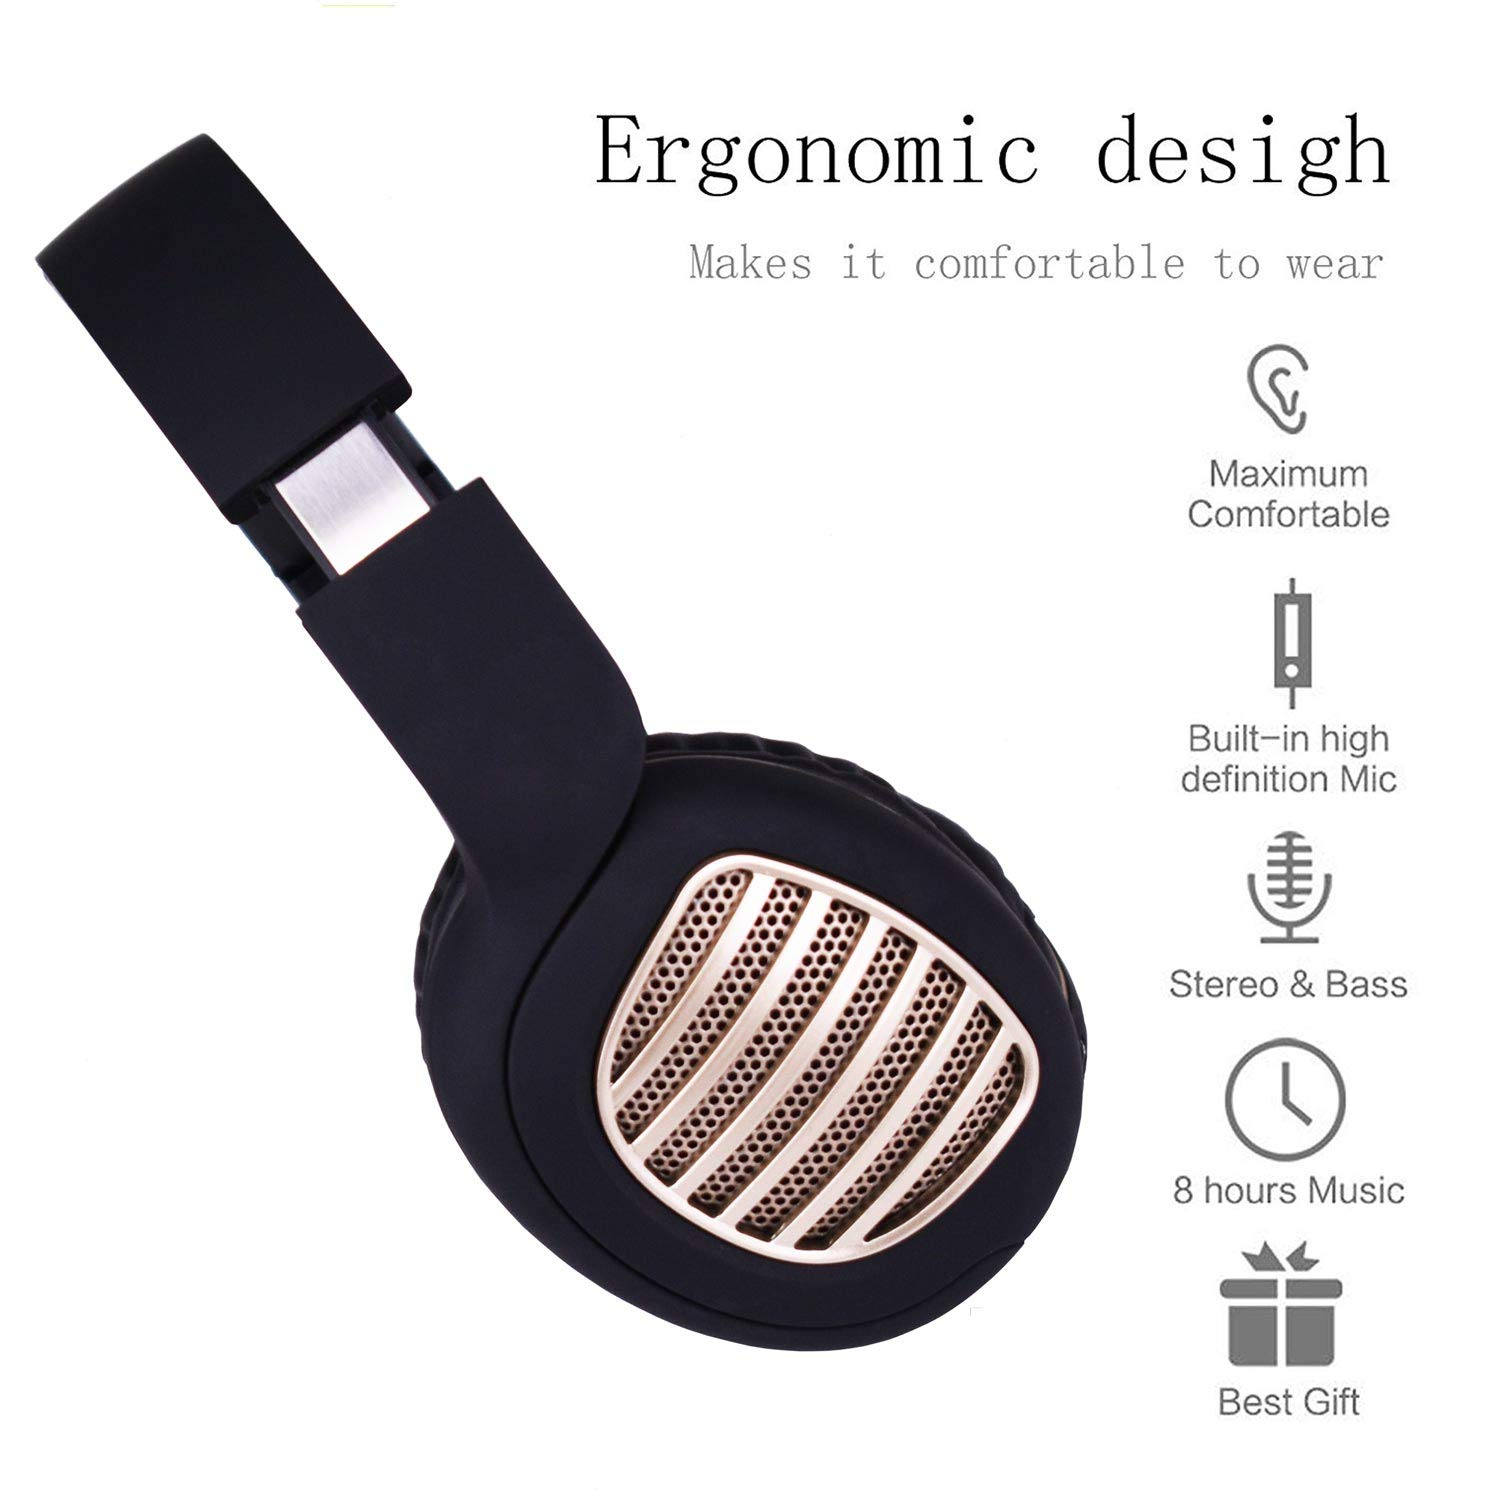 4in1 Bluetooth Headphones, Dogxiong Bluetooth 4.2 Wireless Foldable Headphones Over Ear with Microphone, Soft Memory-Protein Earmuffs, FM Radio Wireless and Wired Headset for PC iPhone iPad Tablet